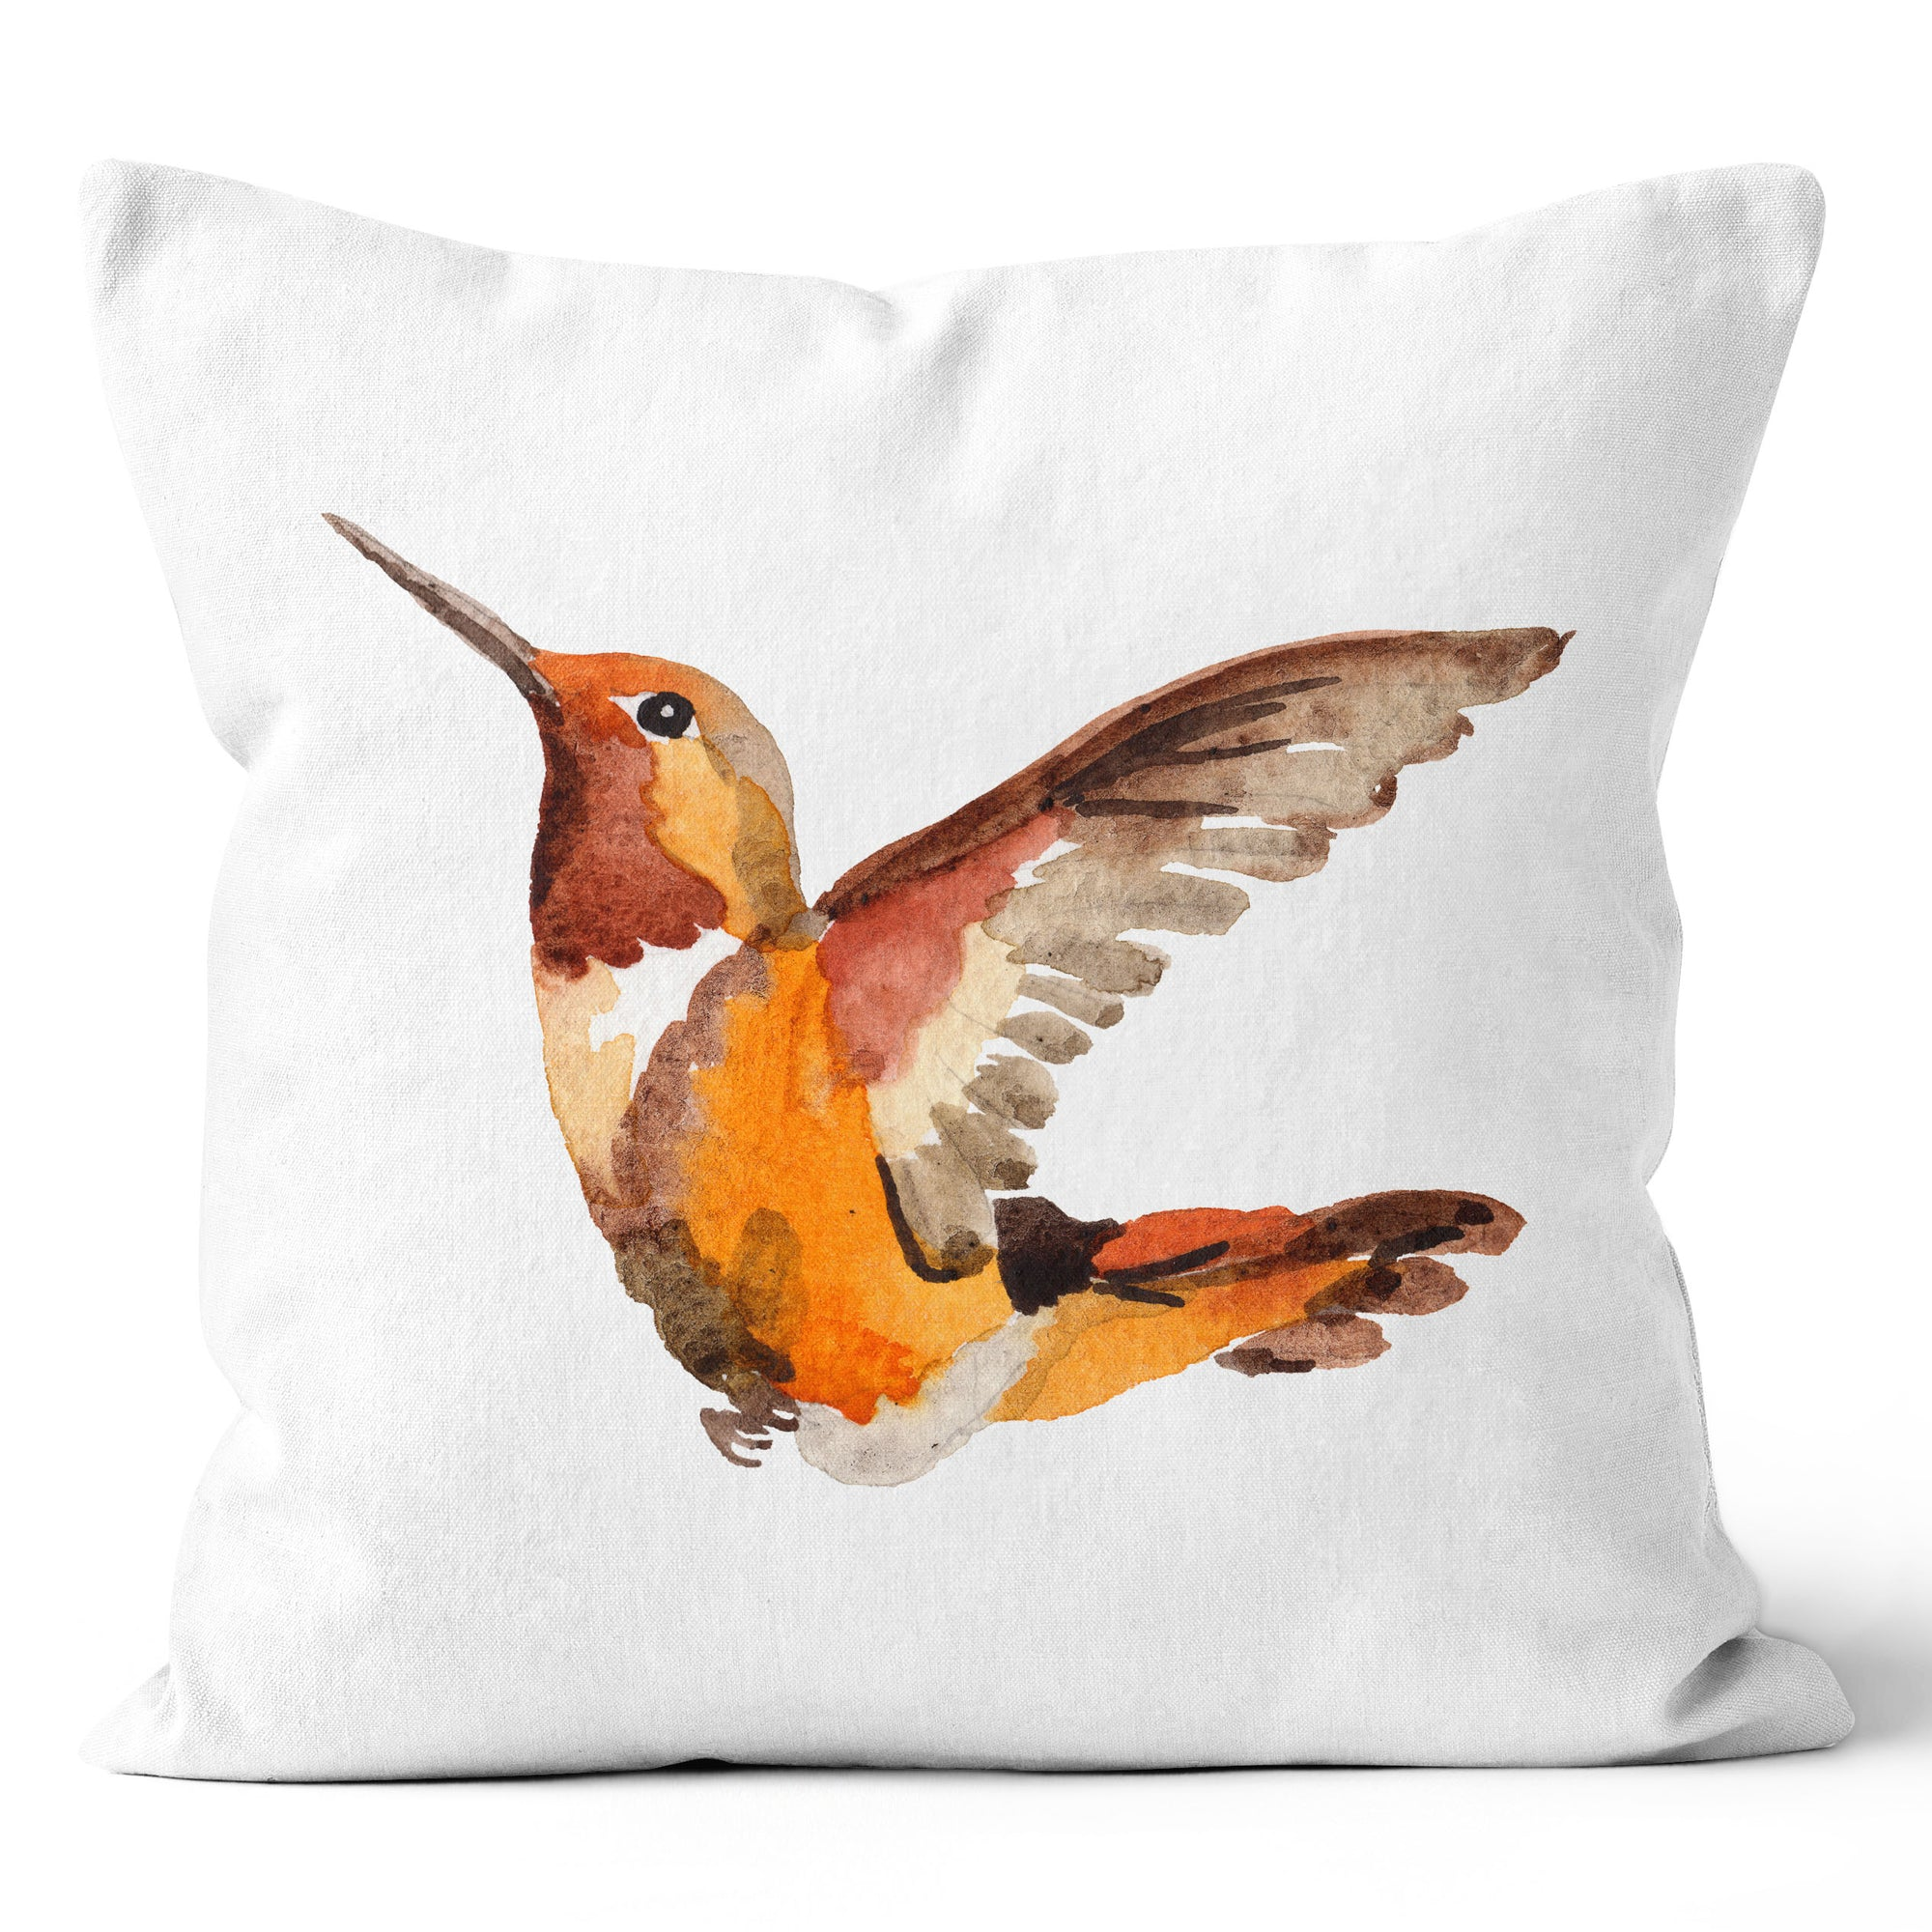 Precious Hints Hummingbird Coral Cushion